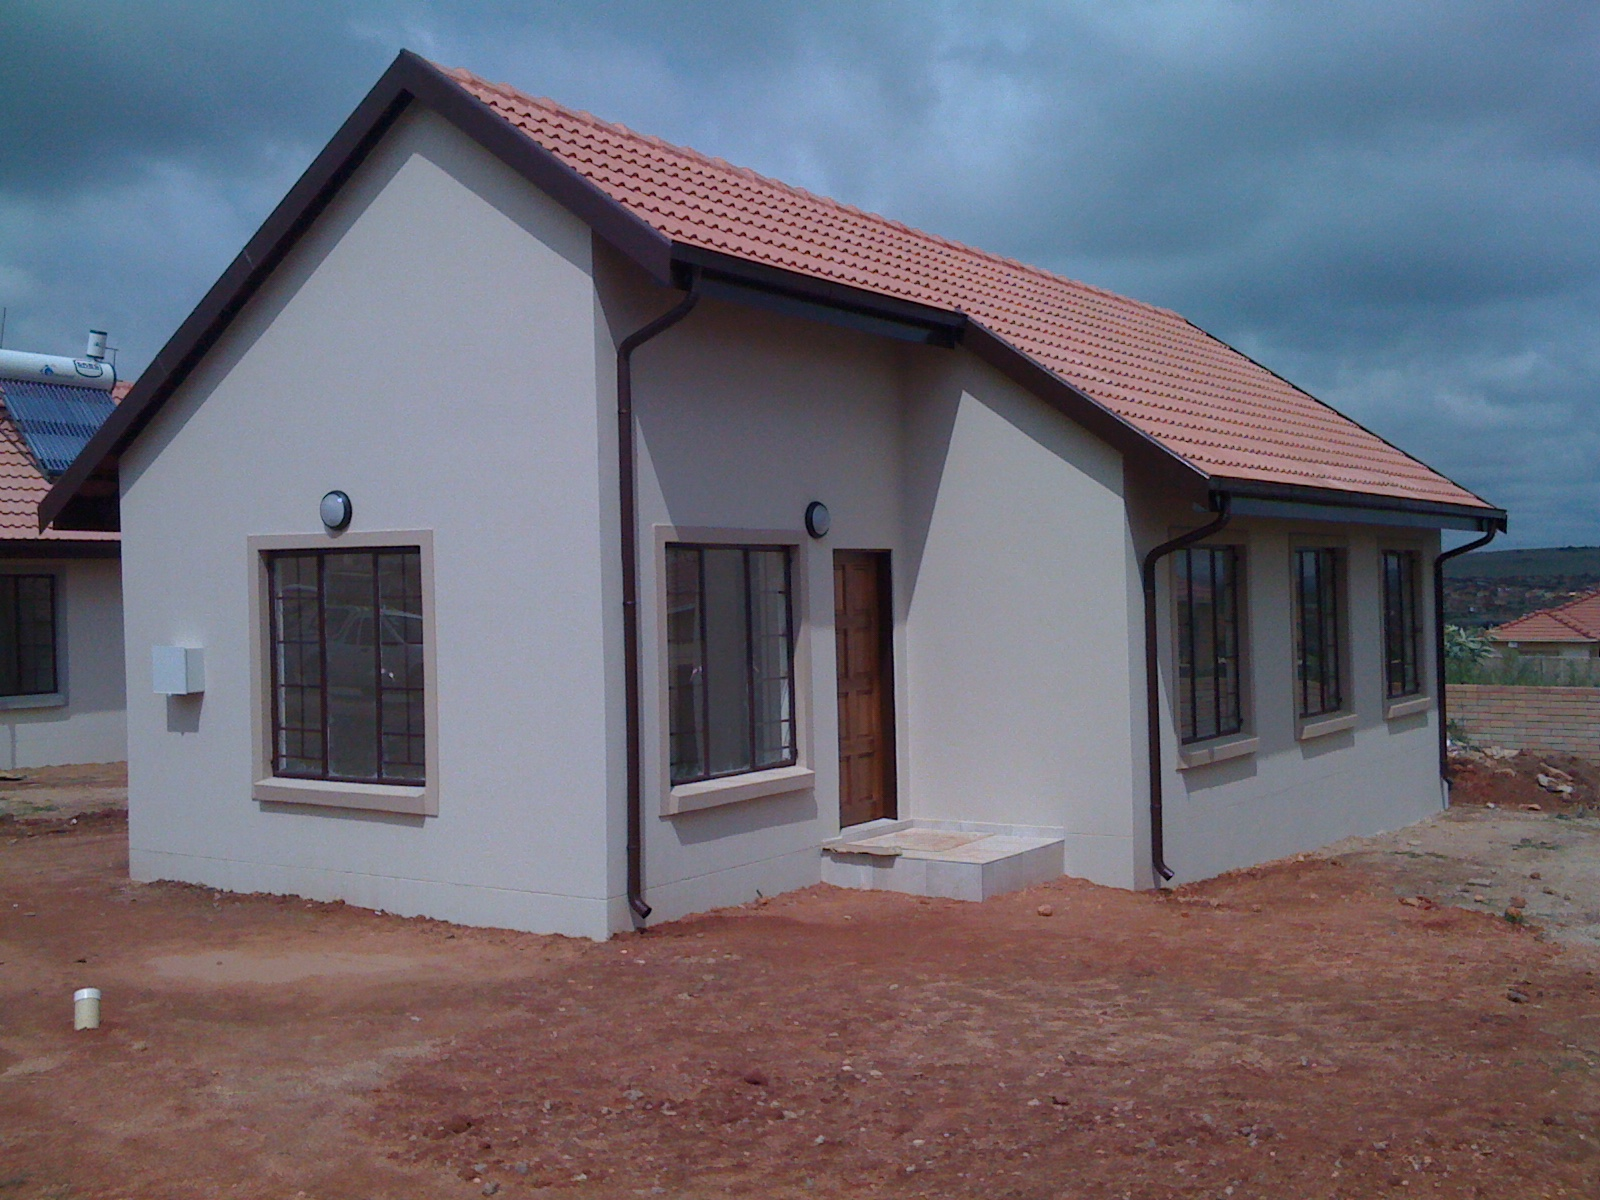 Low cost house plans in south africa for House plans with low cost to build